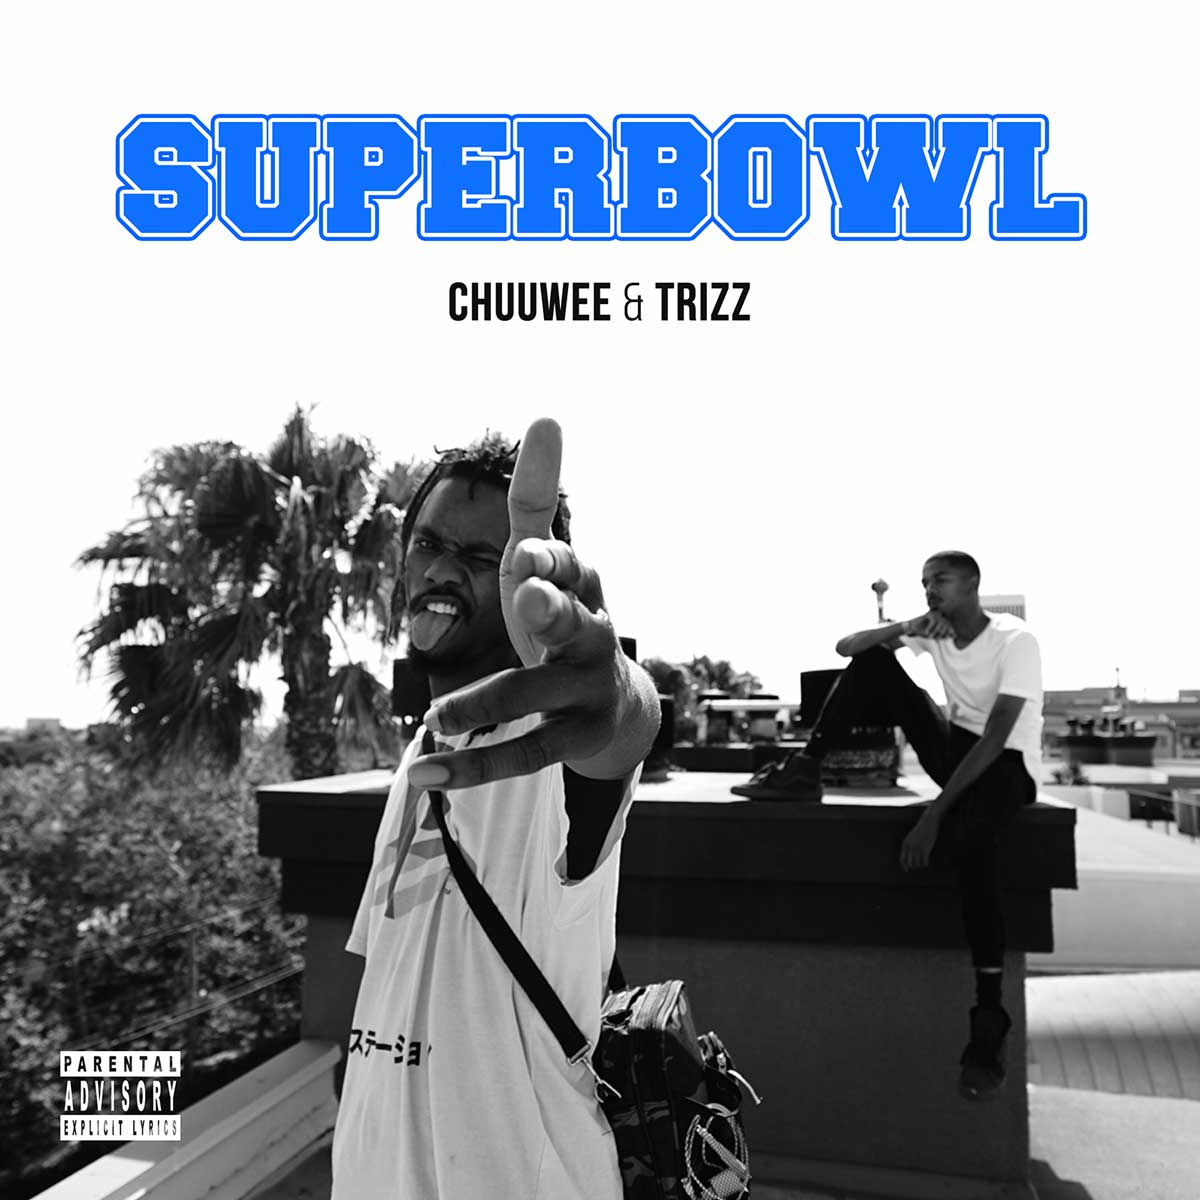 Chuuwee & Trizz - Superbowl